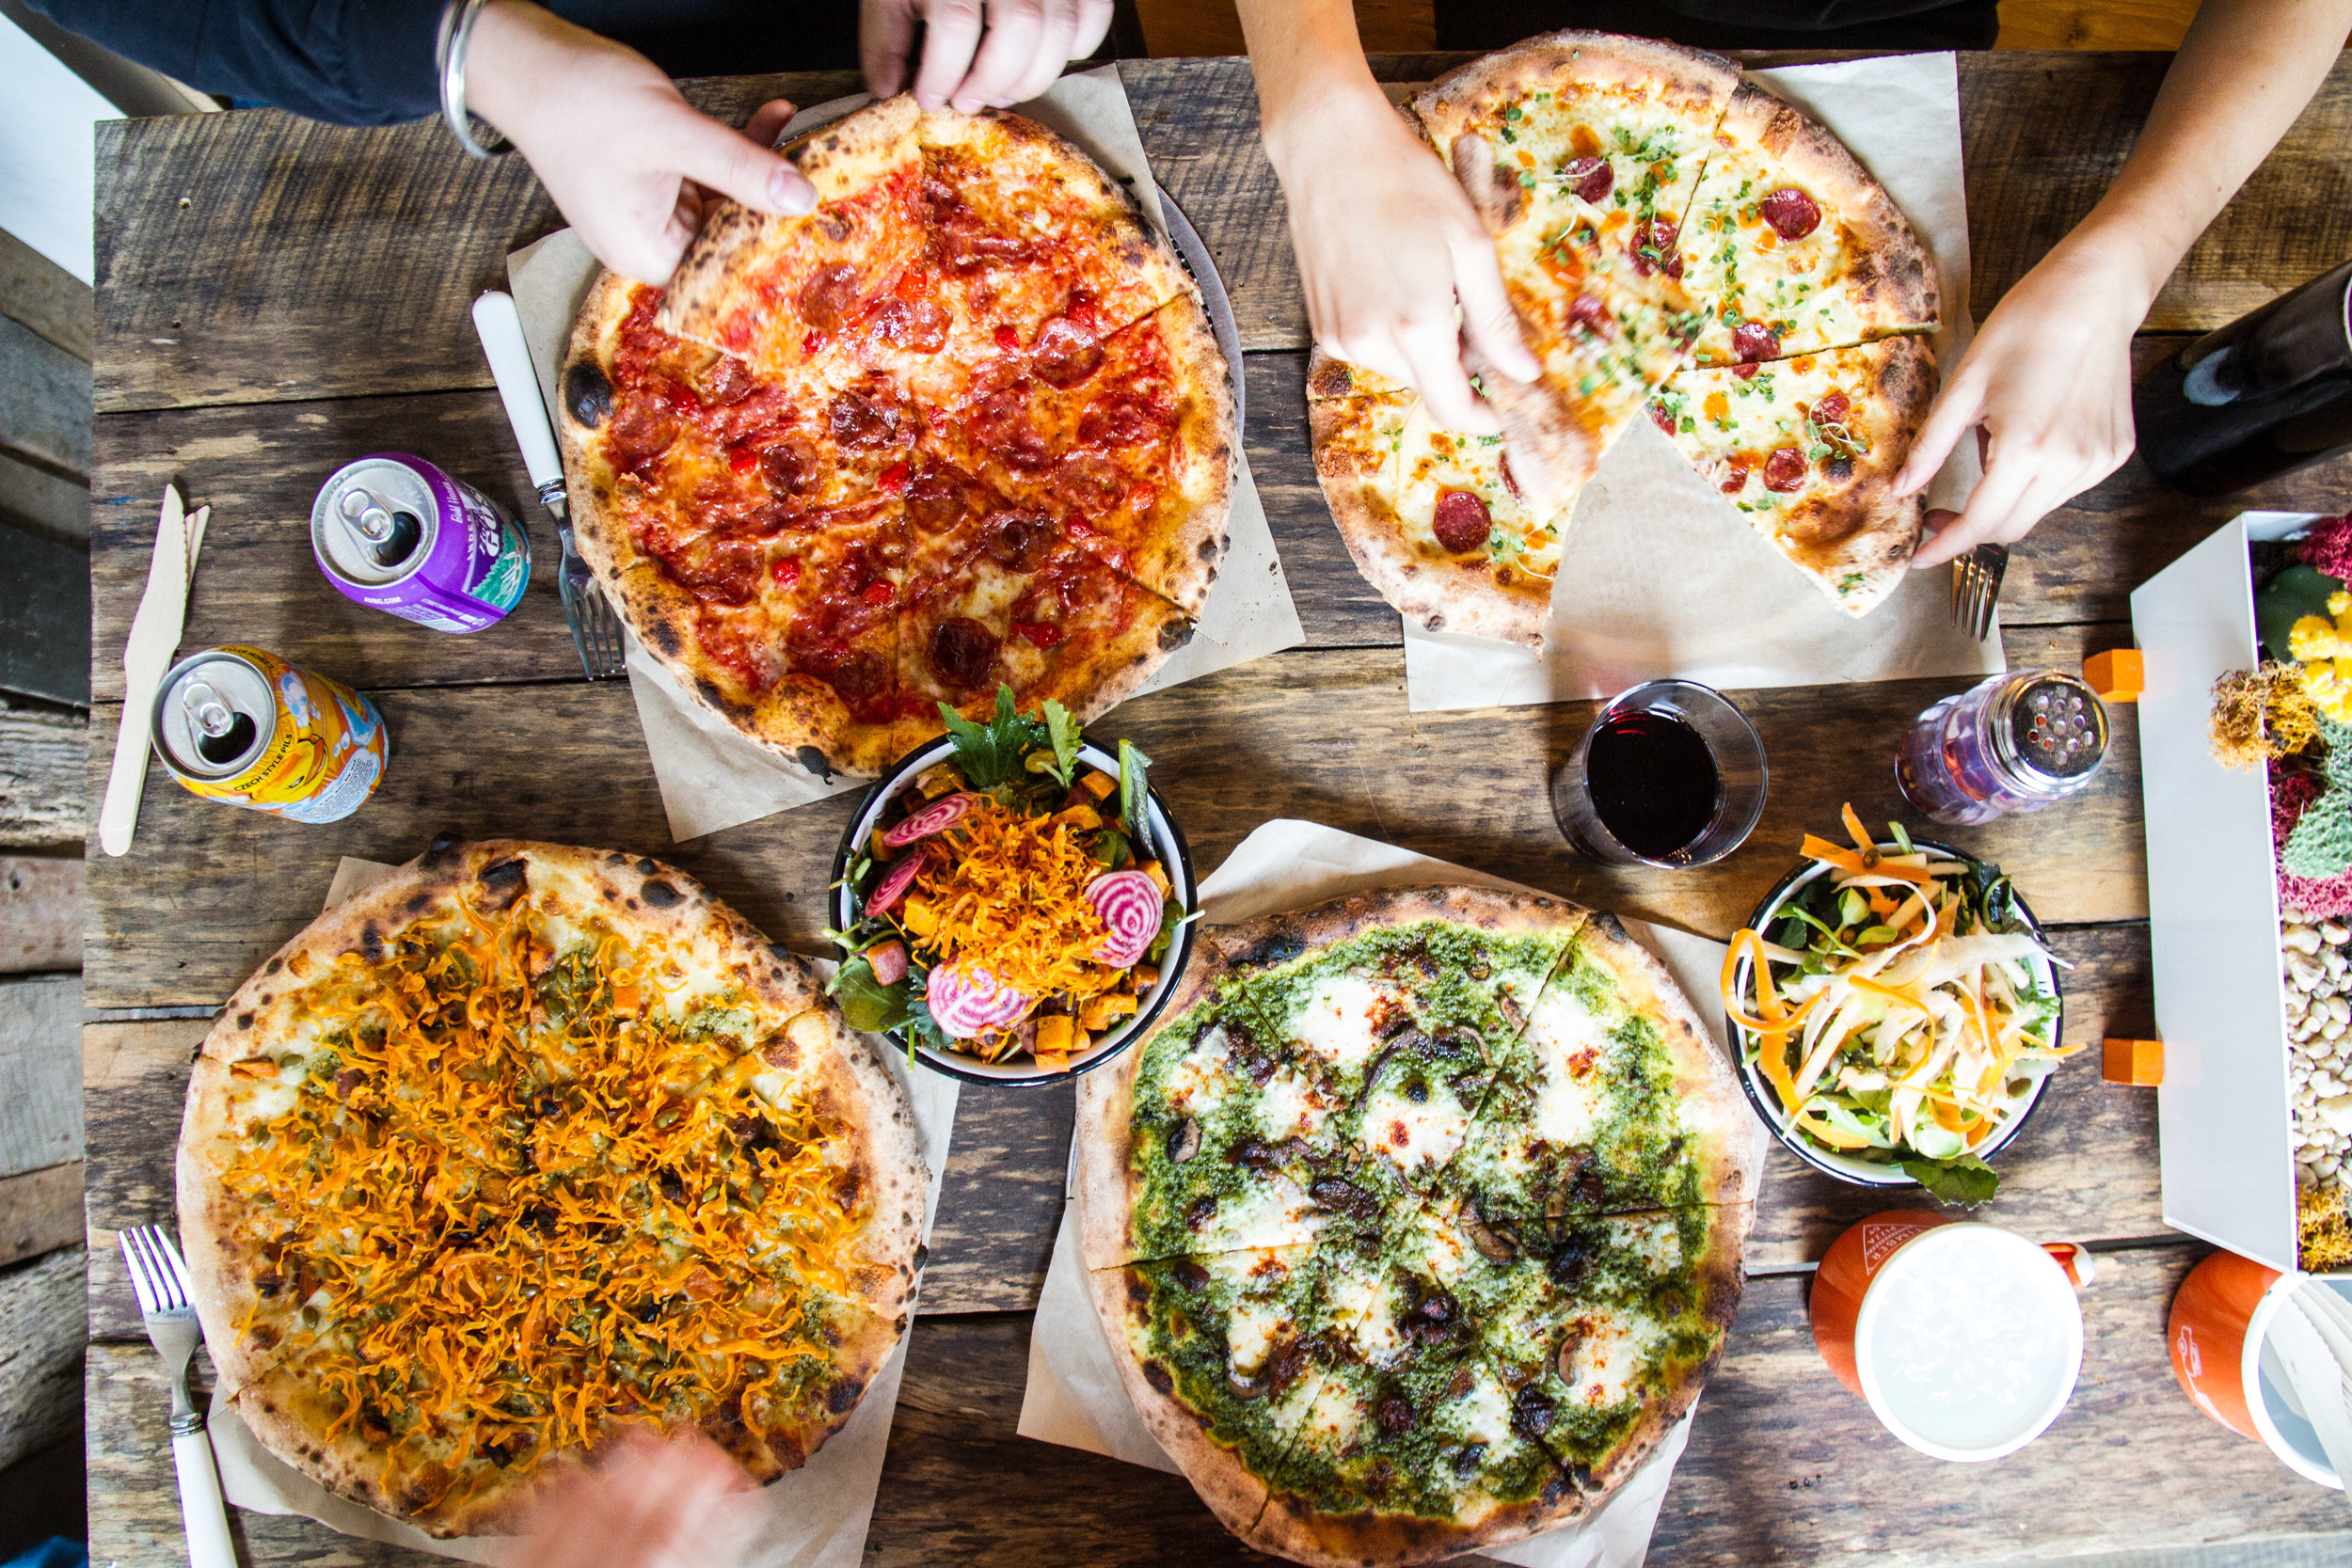 Four pizzas with various toppings from Timber Pizza Co.